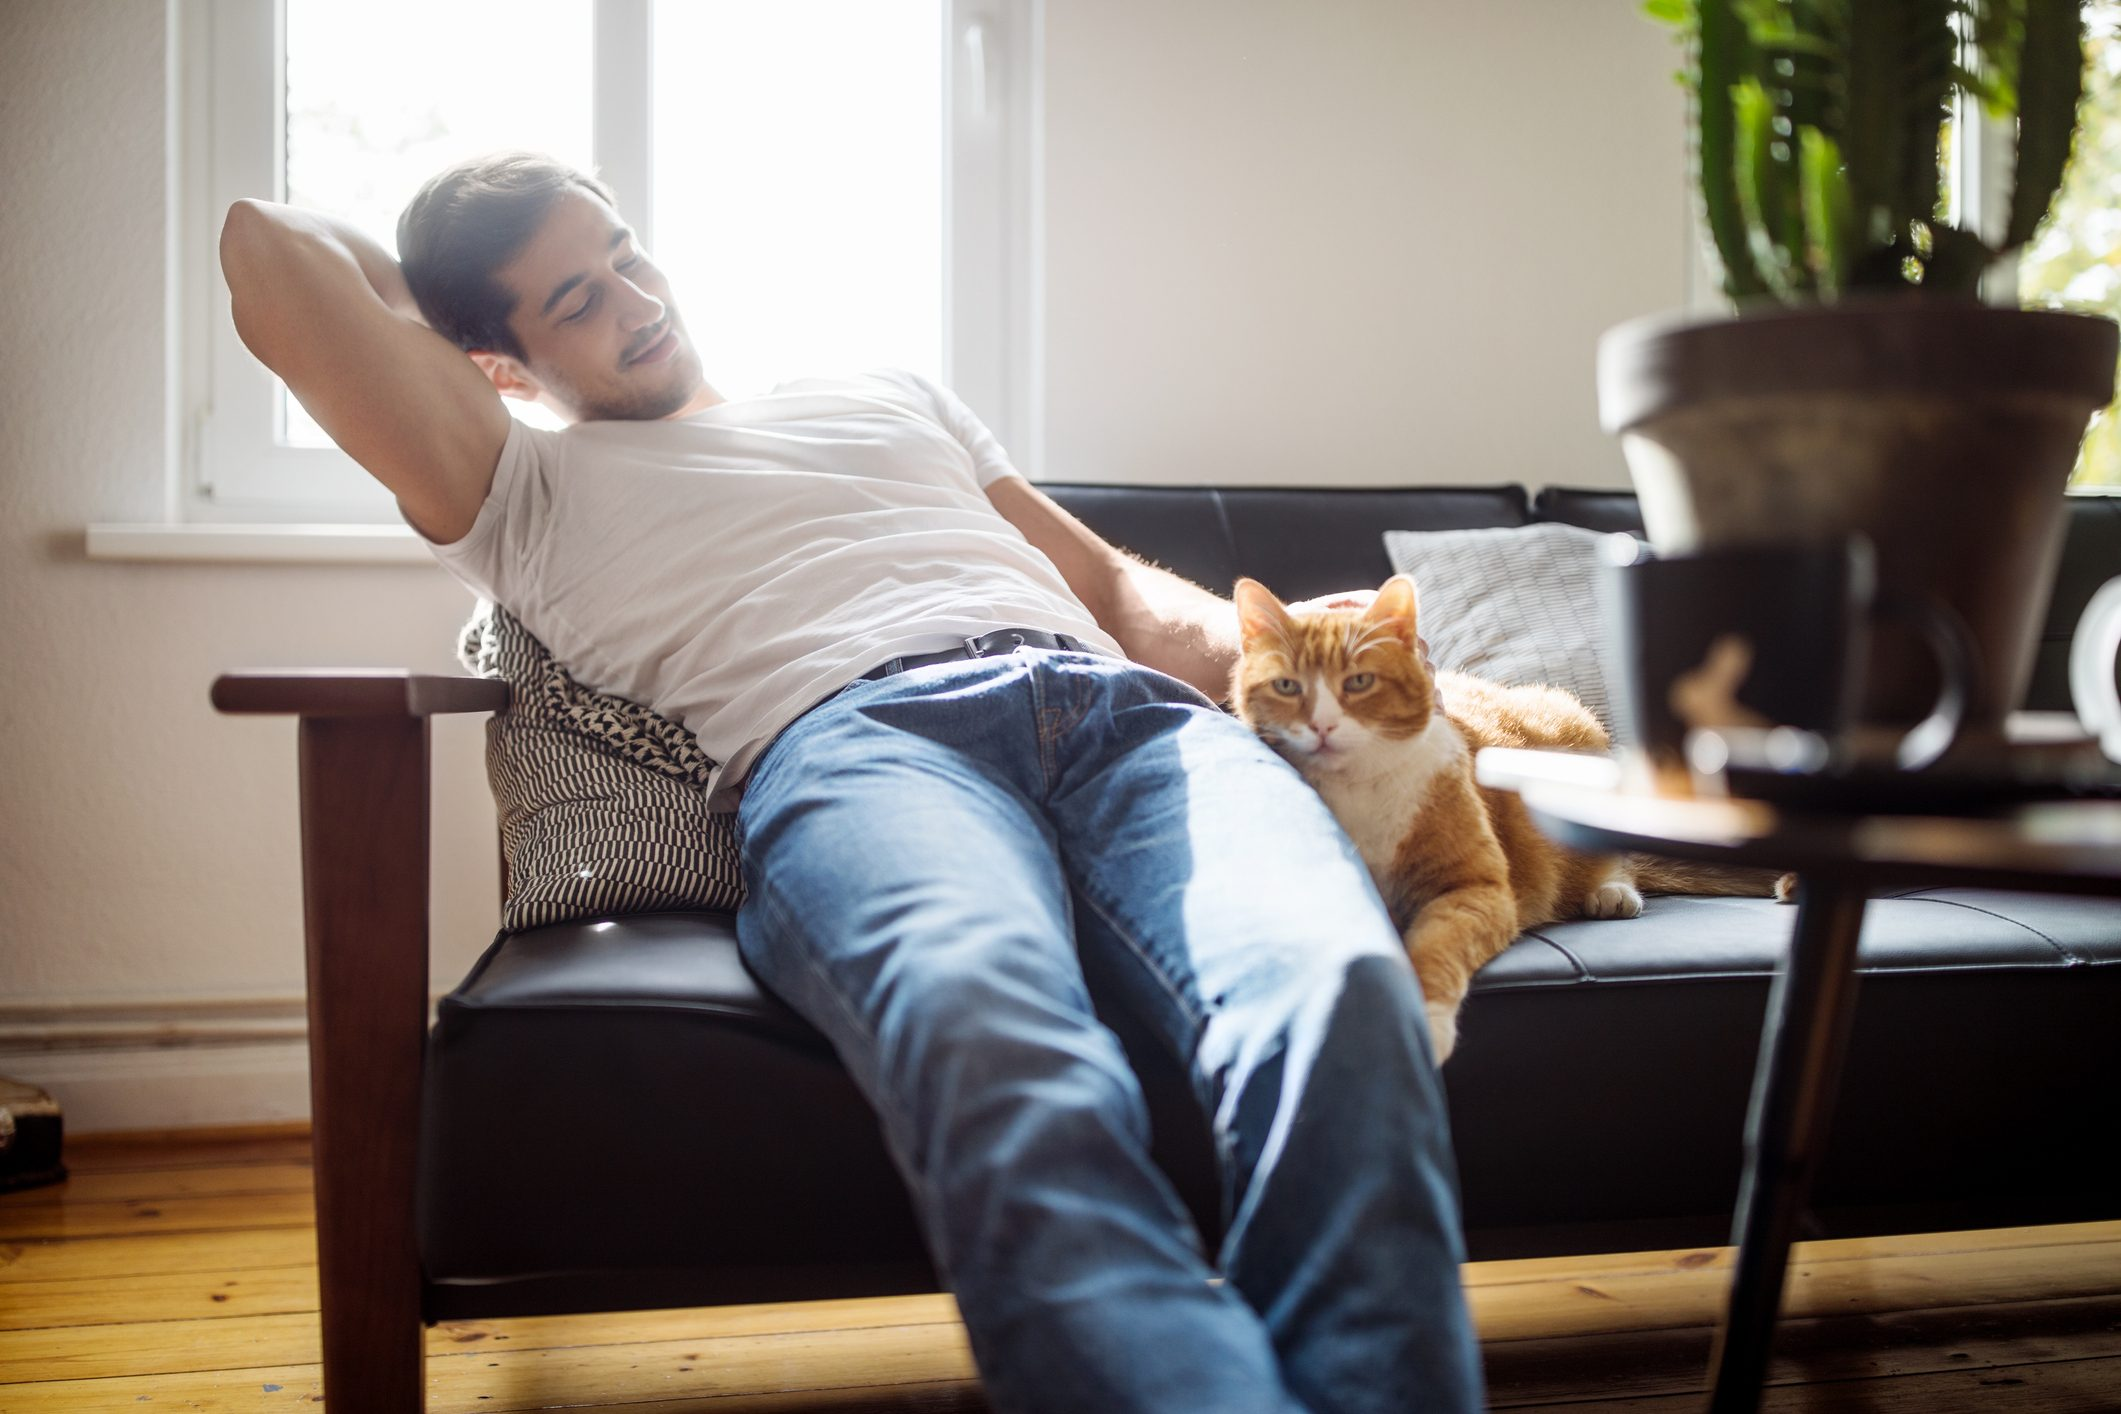 man sitting on couch with cat